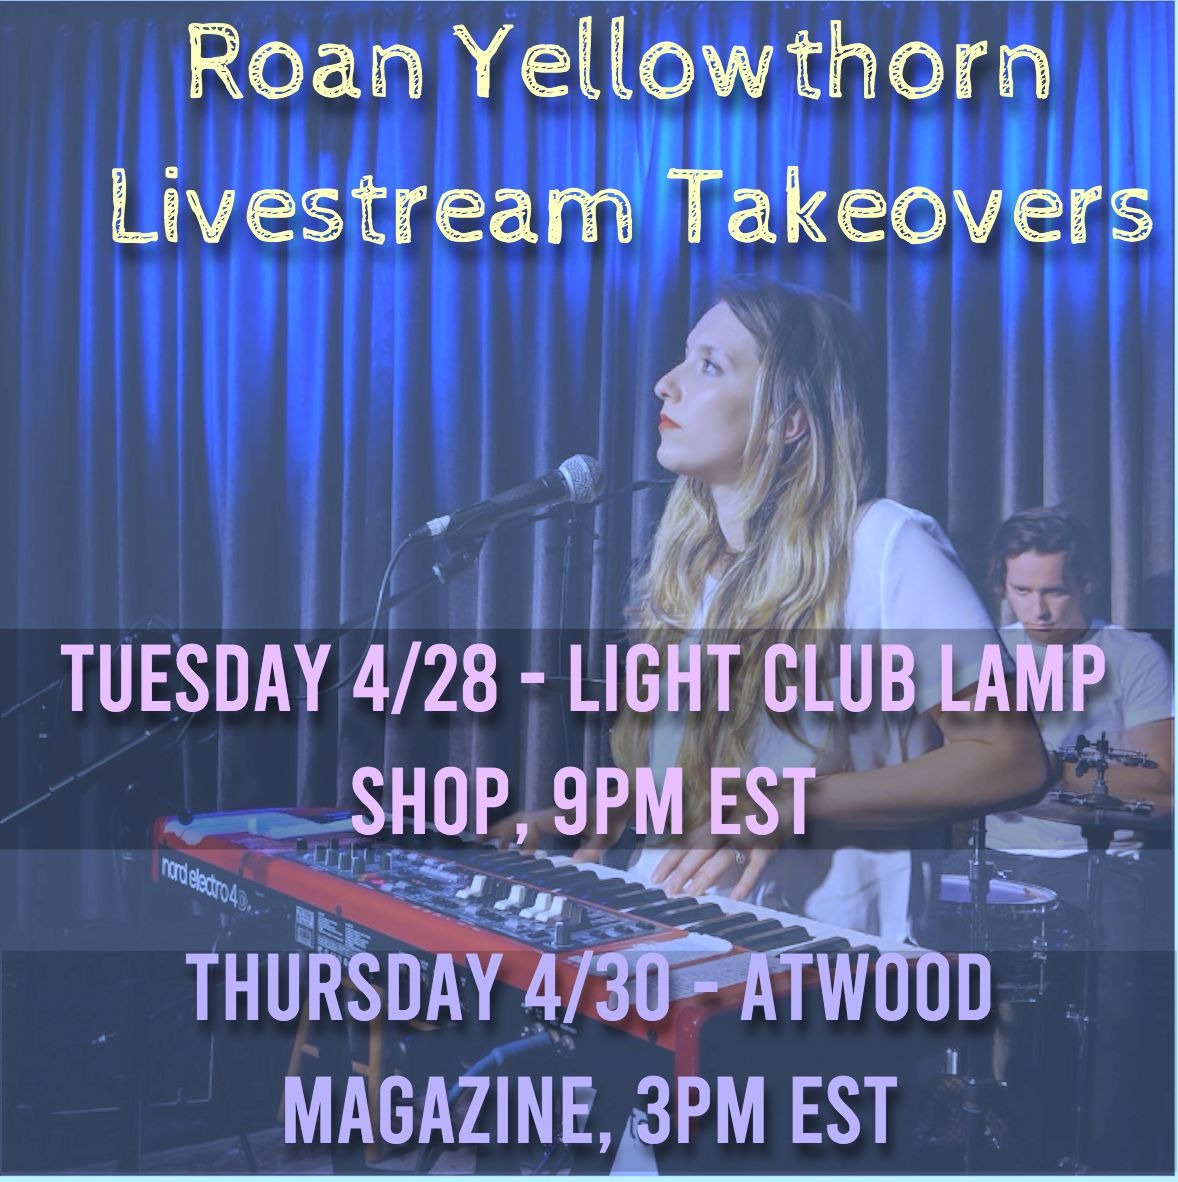 Roan Yellowthorn's upcoming takeovers